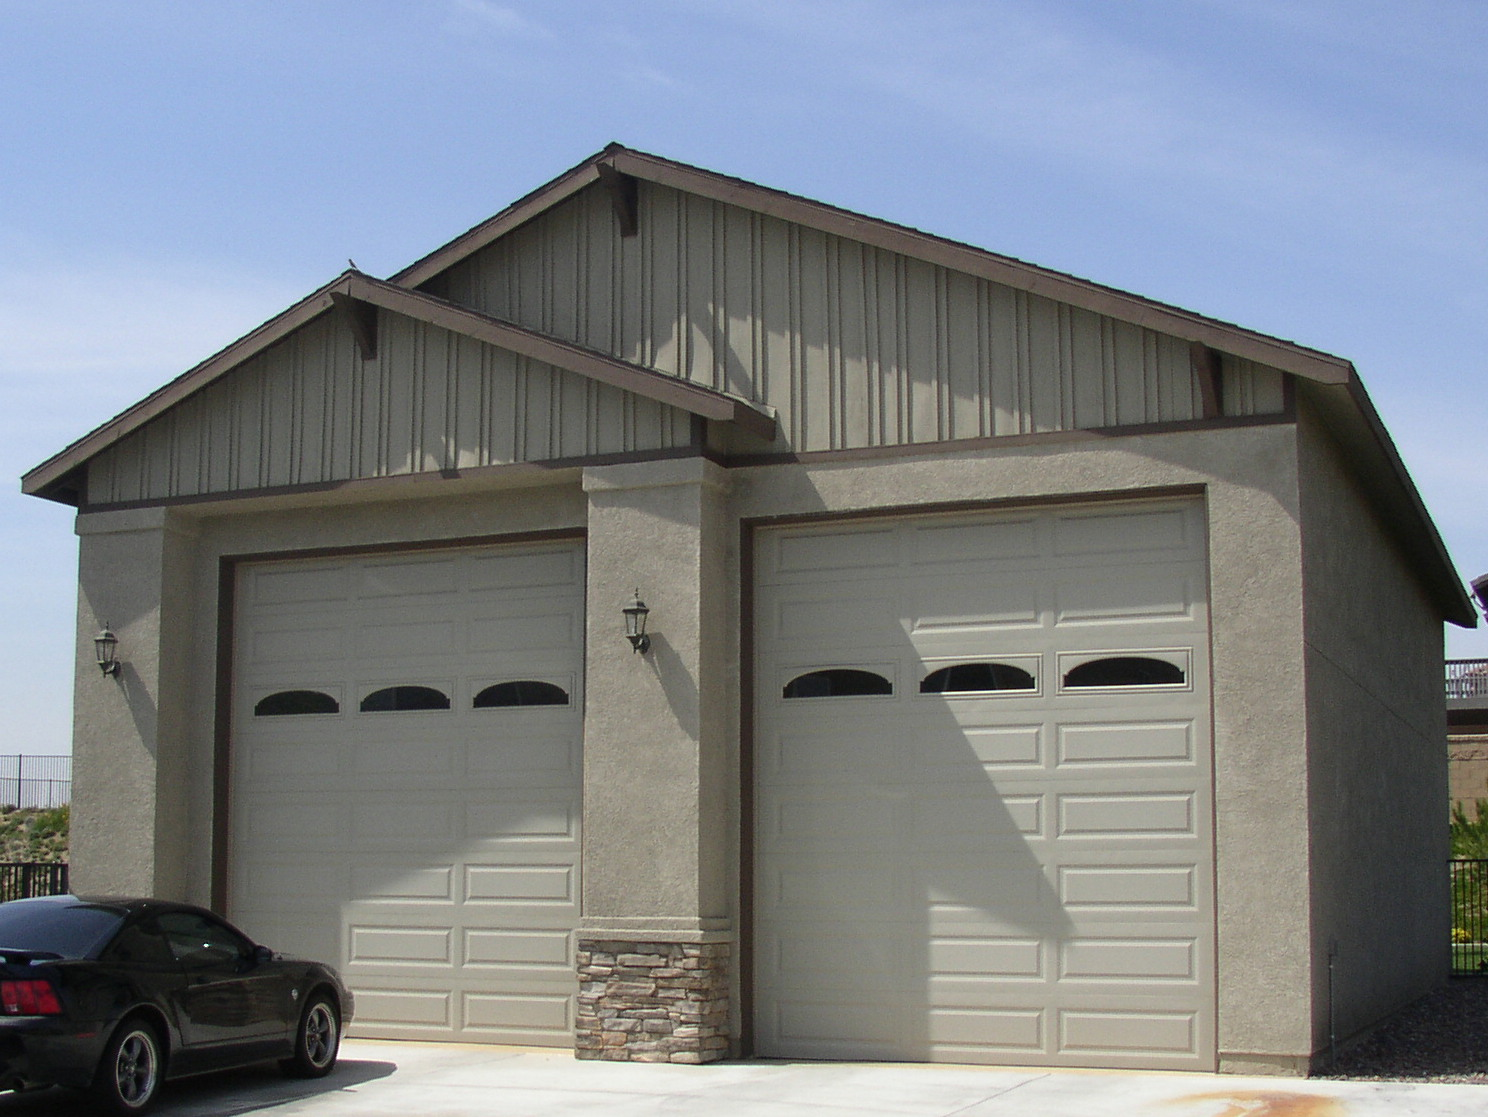 R l osborn architect rsidential projects for Rv garage door